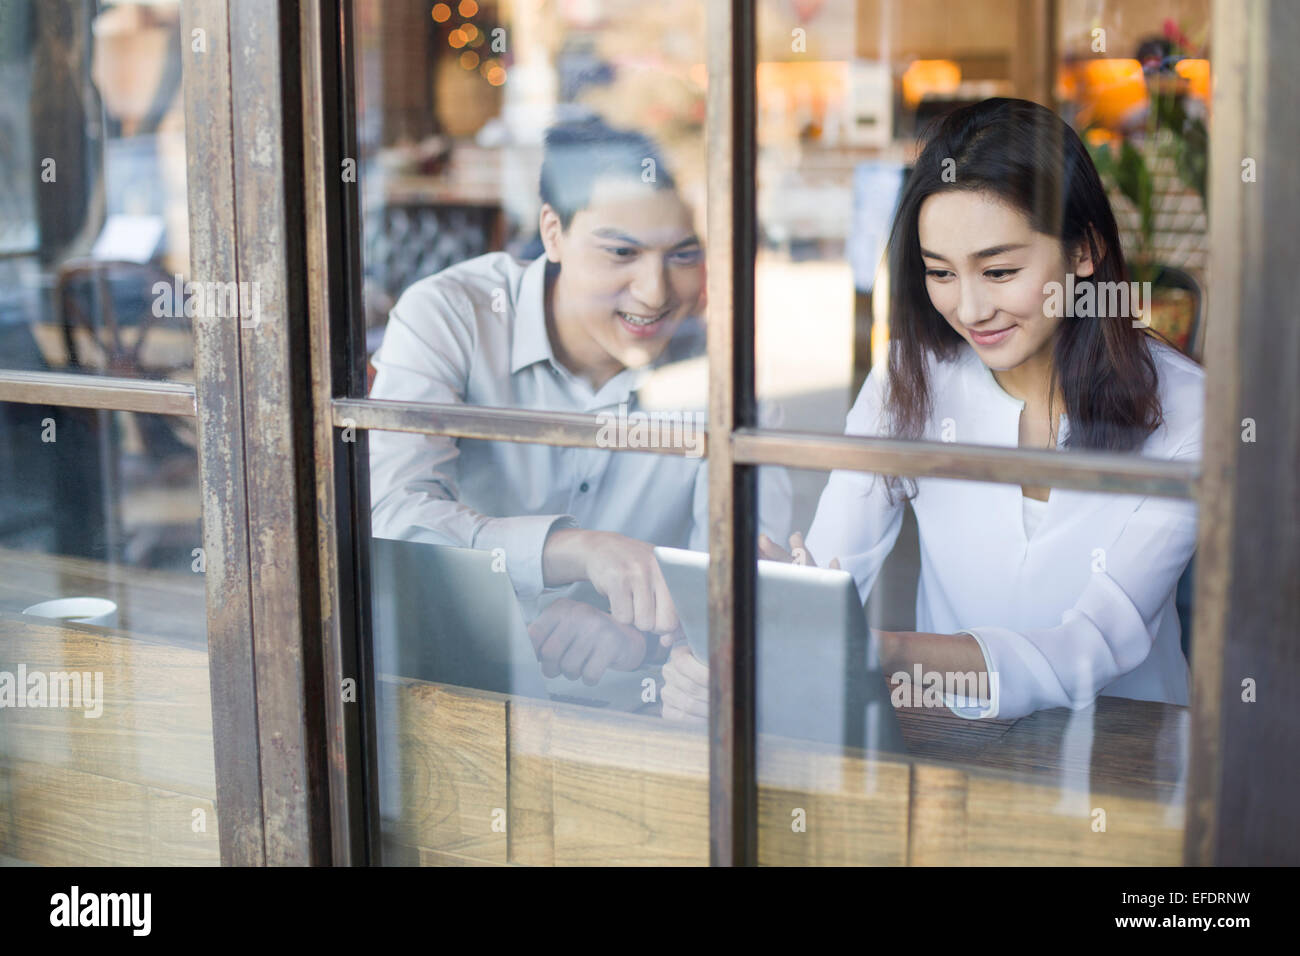 Young man and woman using digital tablet in cafe - Stock Image